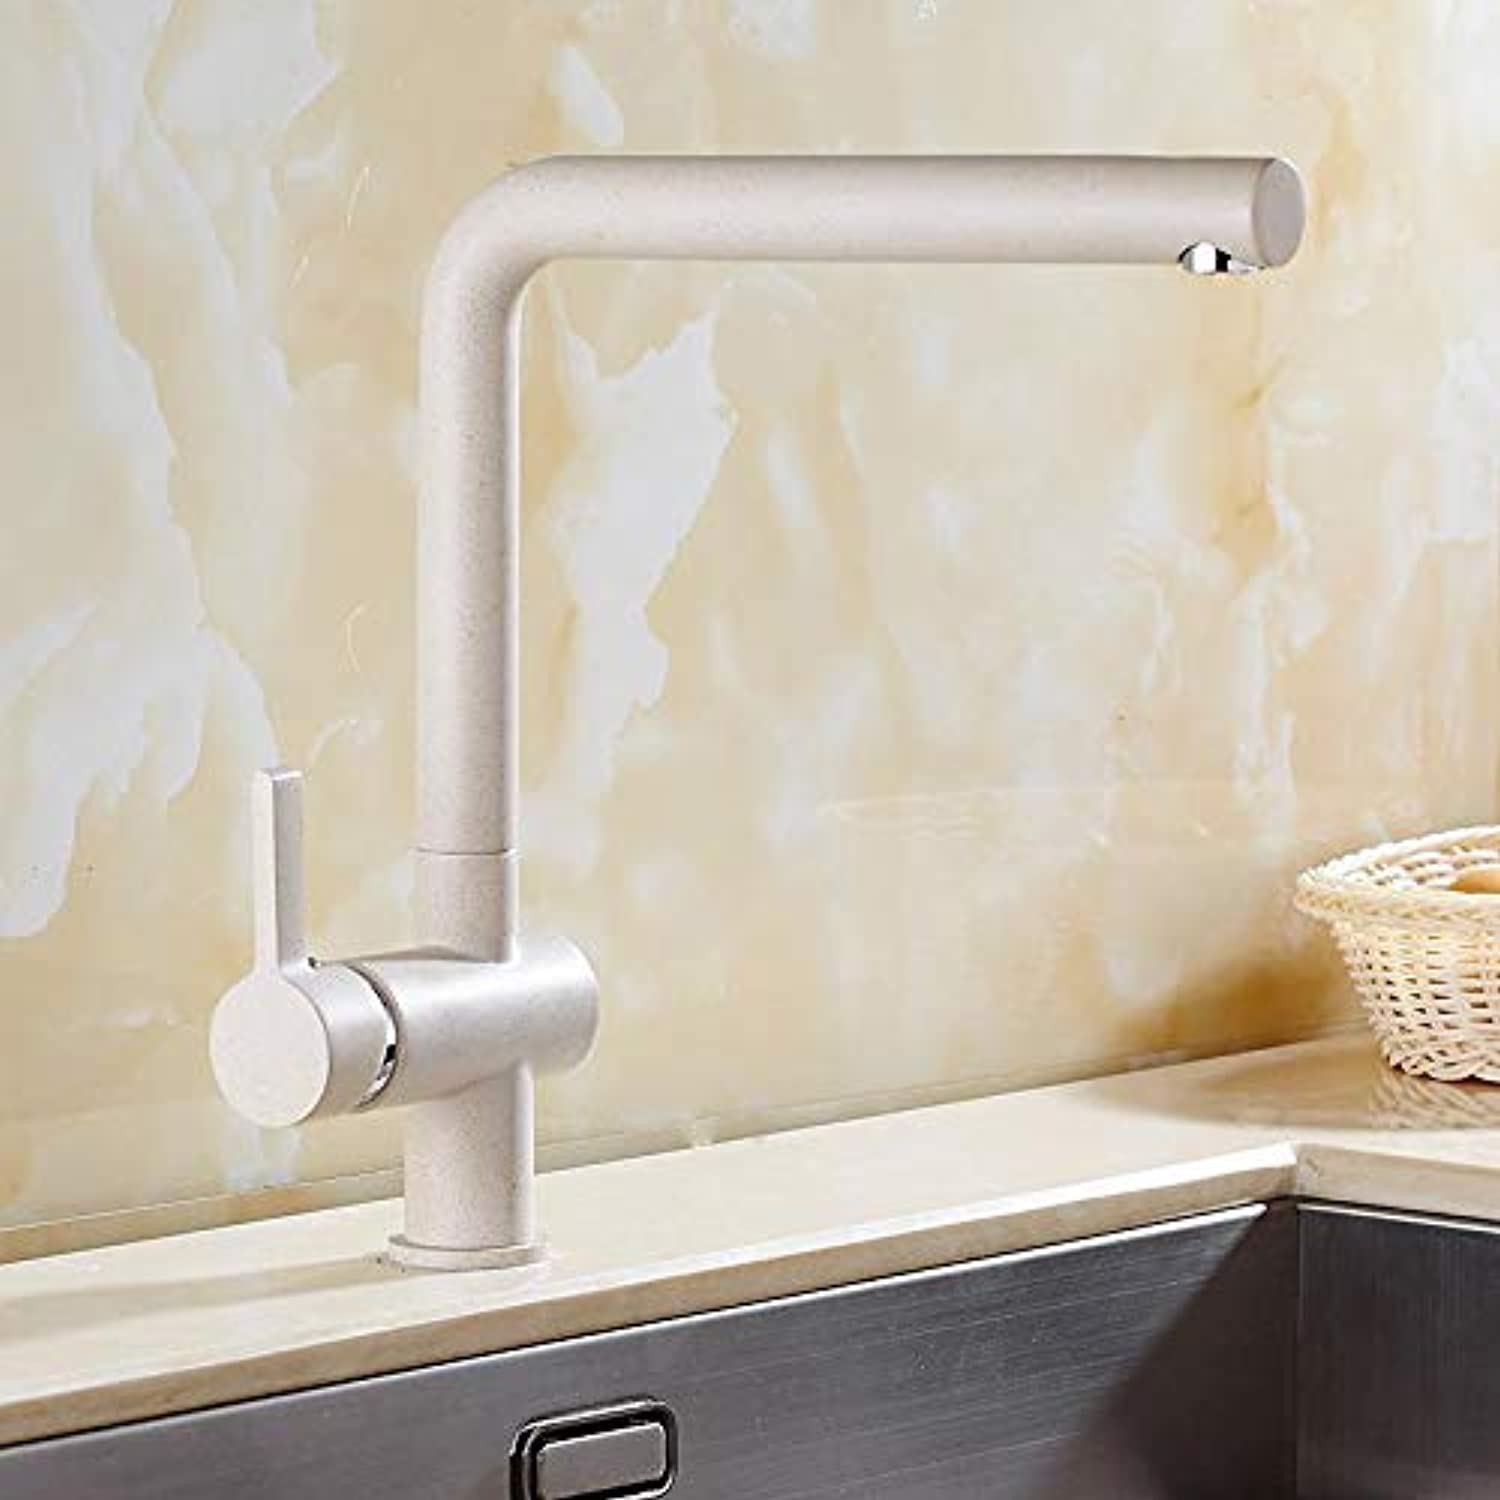 Kitchen Sink Taps Oatmeal Kitchen Mixer Faucet redating Sink Sink Hot and Cold Faucet